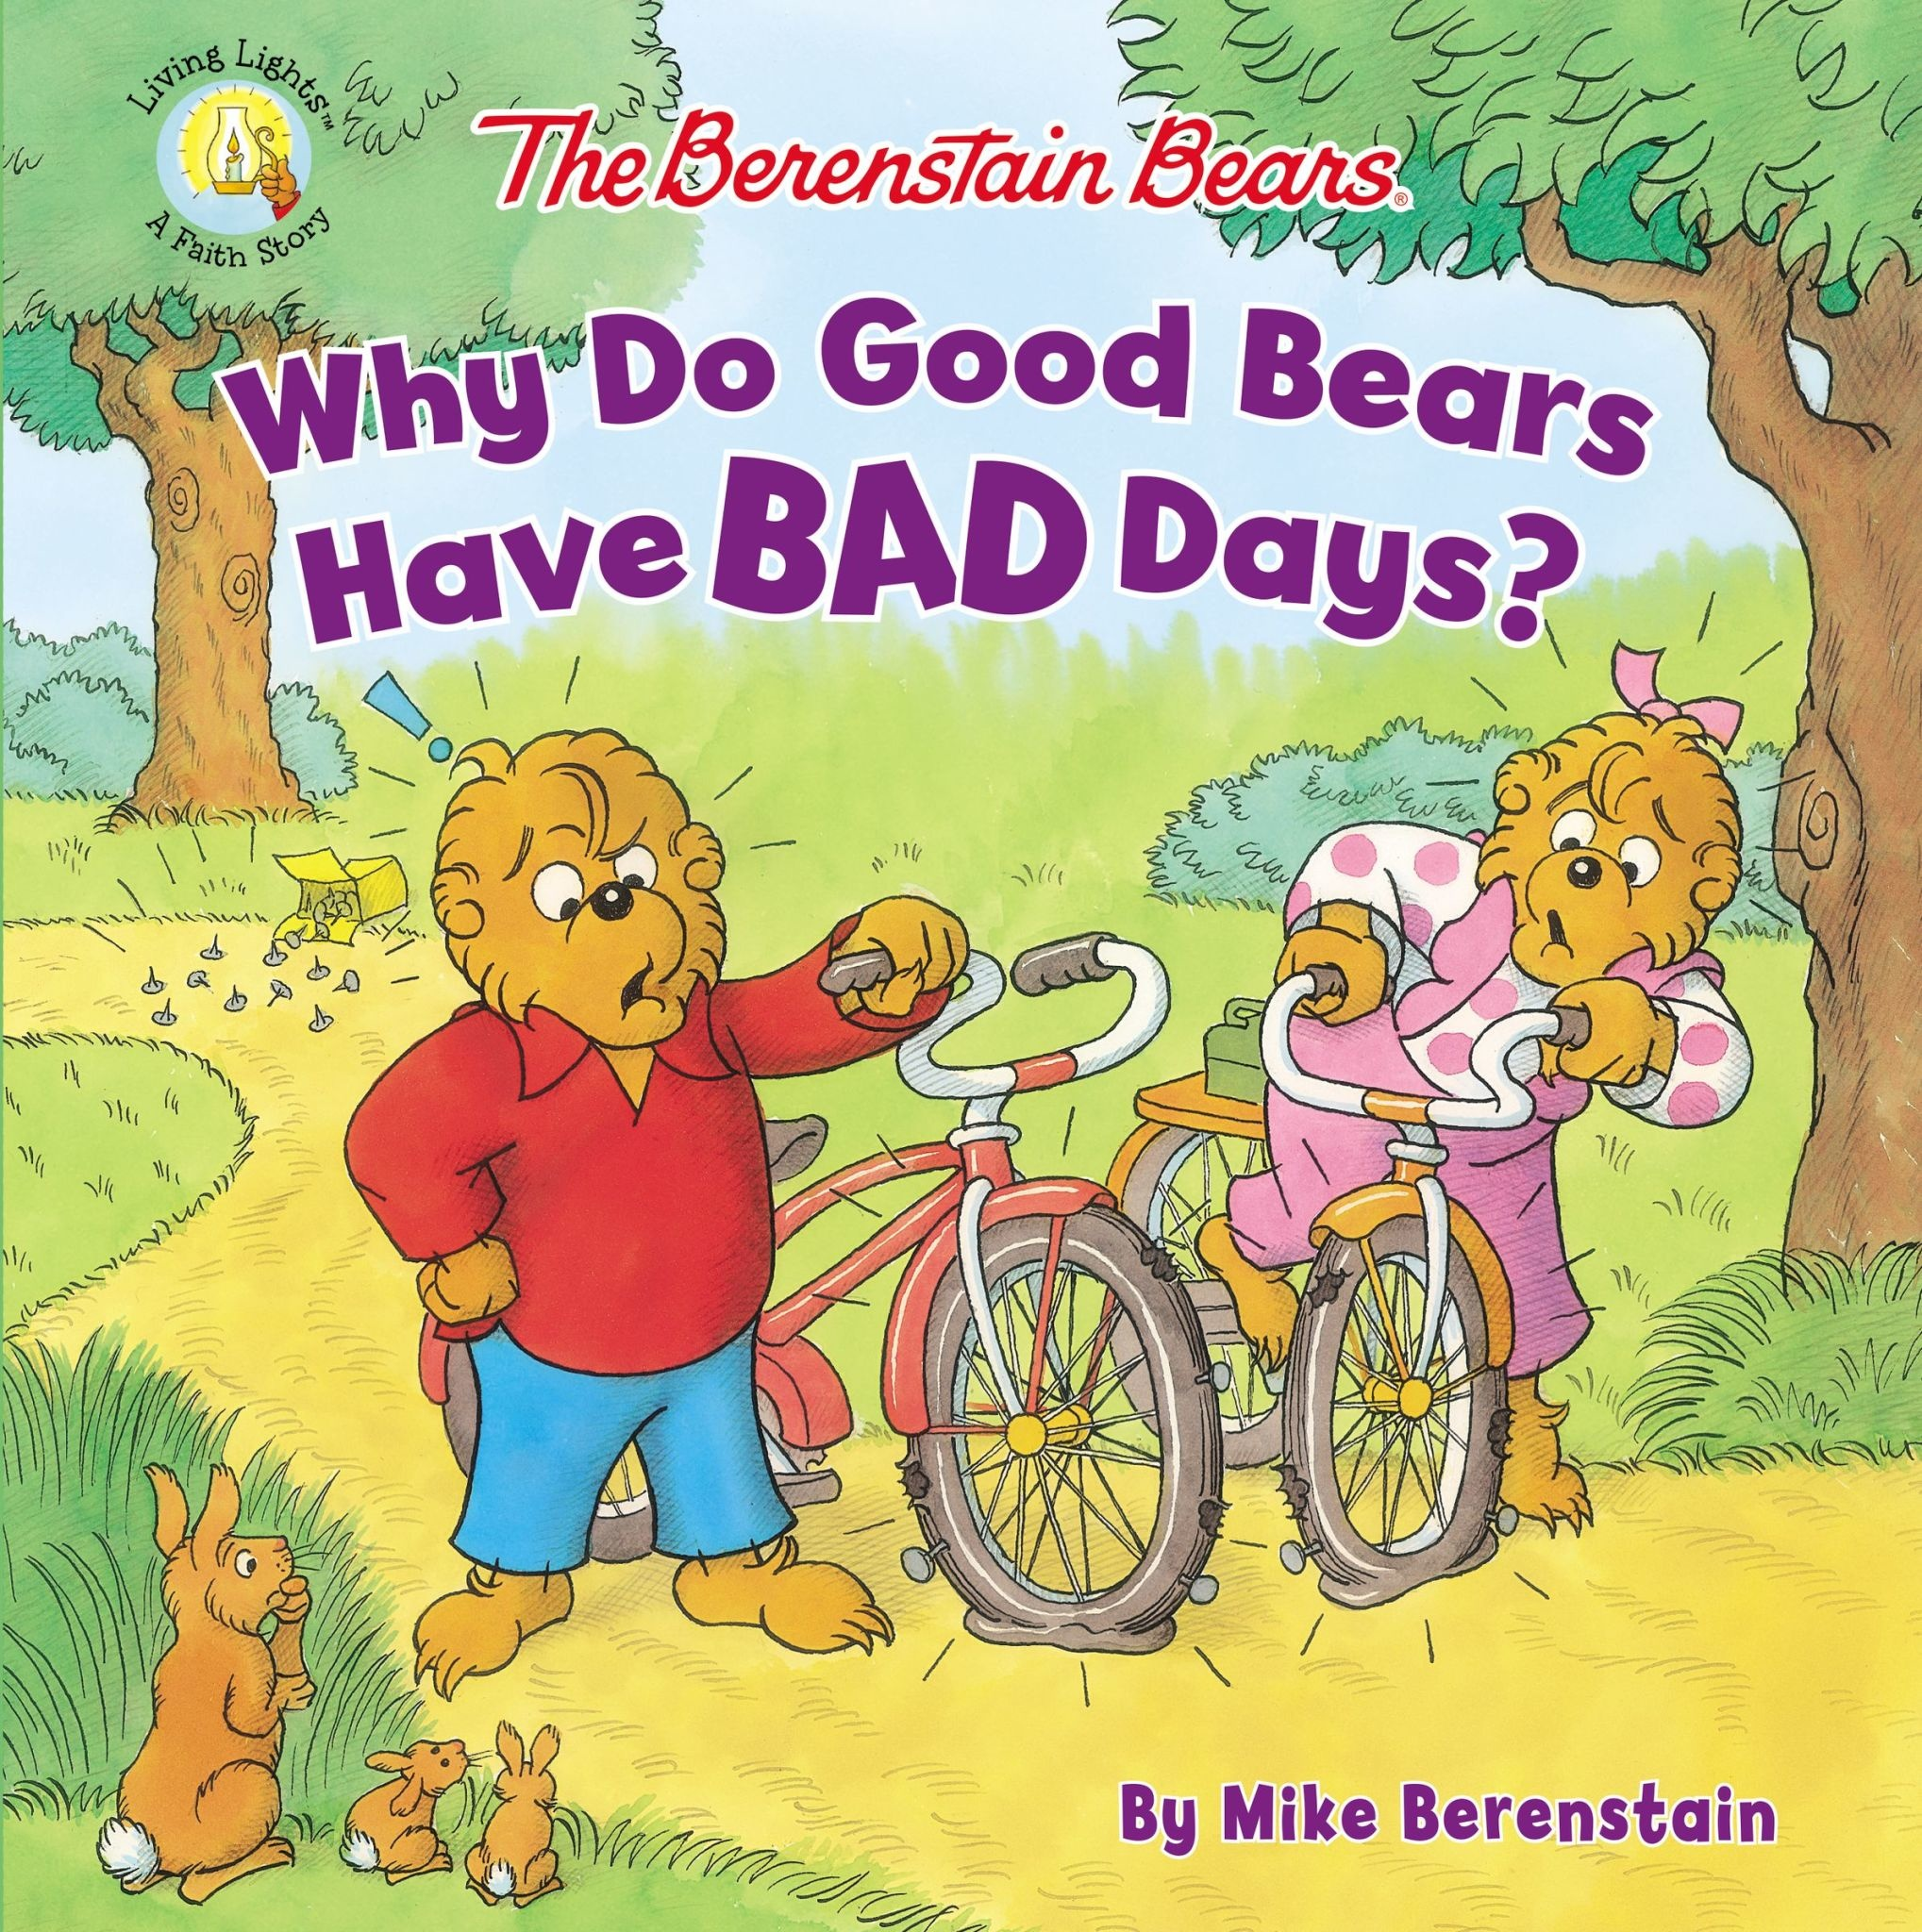 JAN BERENSTAIN The Berenstain Bears Why Do Good Bears Have Bad Days?